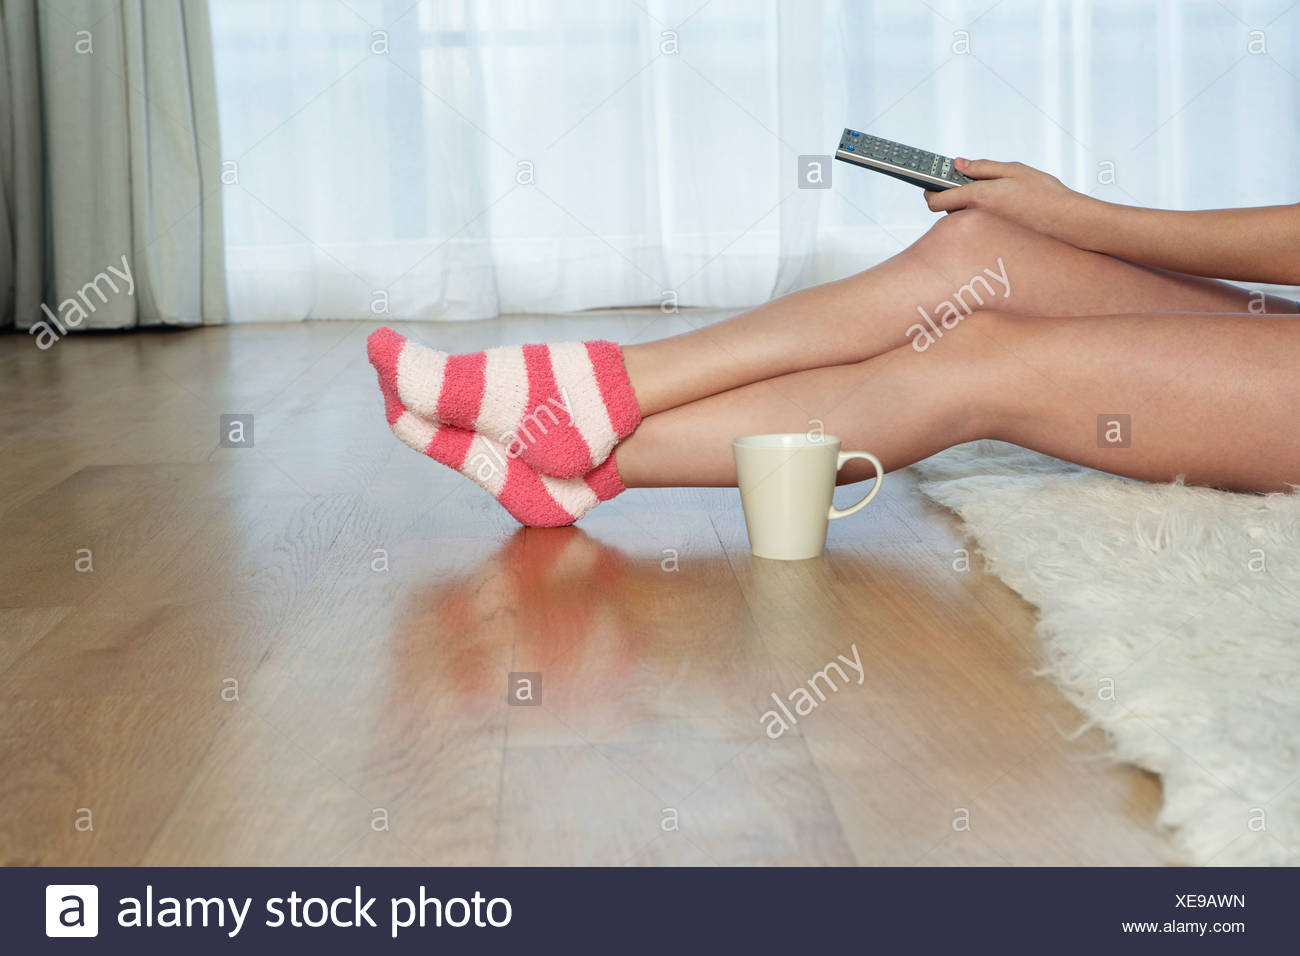 Low angle view of woman in stripey socks holding remote control - Stock Image